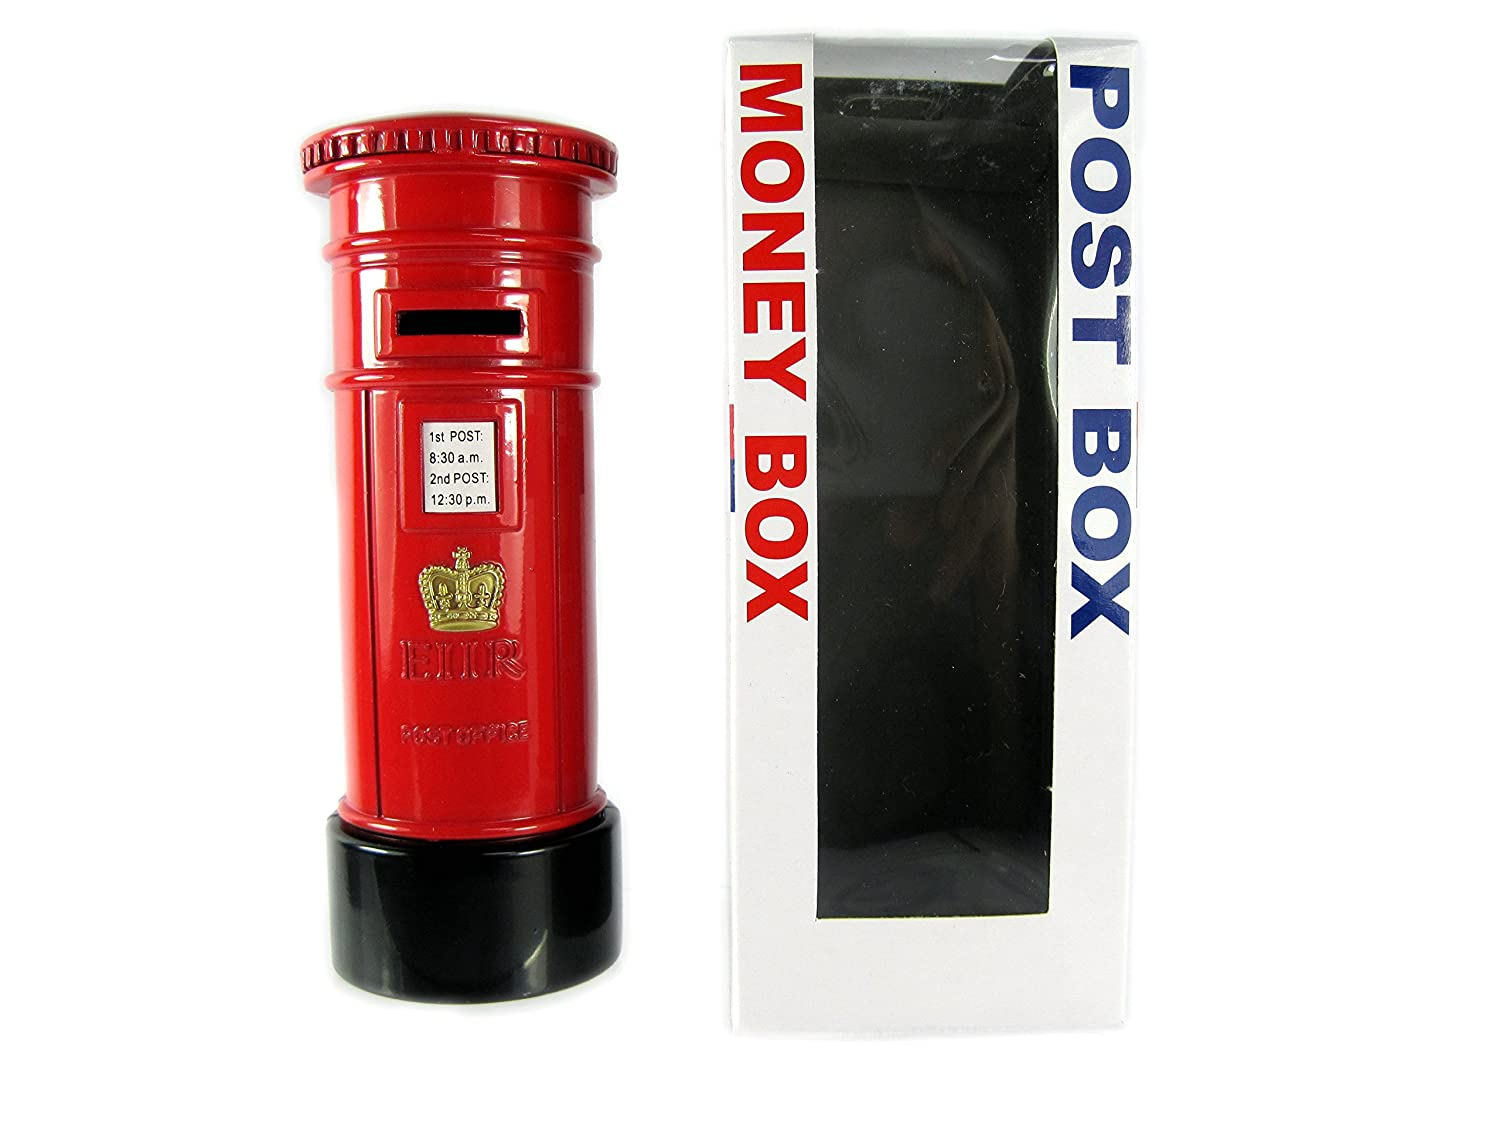 London Red Post Box Money Box Made of Die Cast Metal London Collectable Souvenir